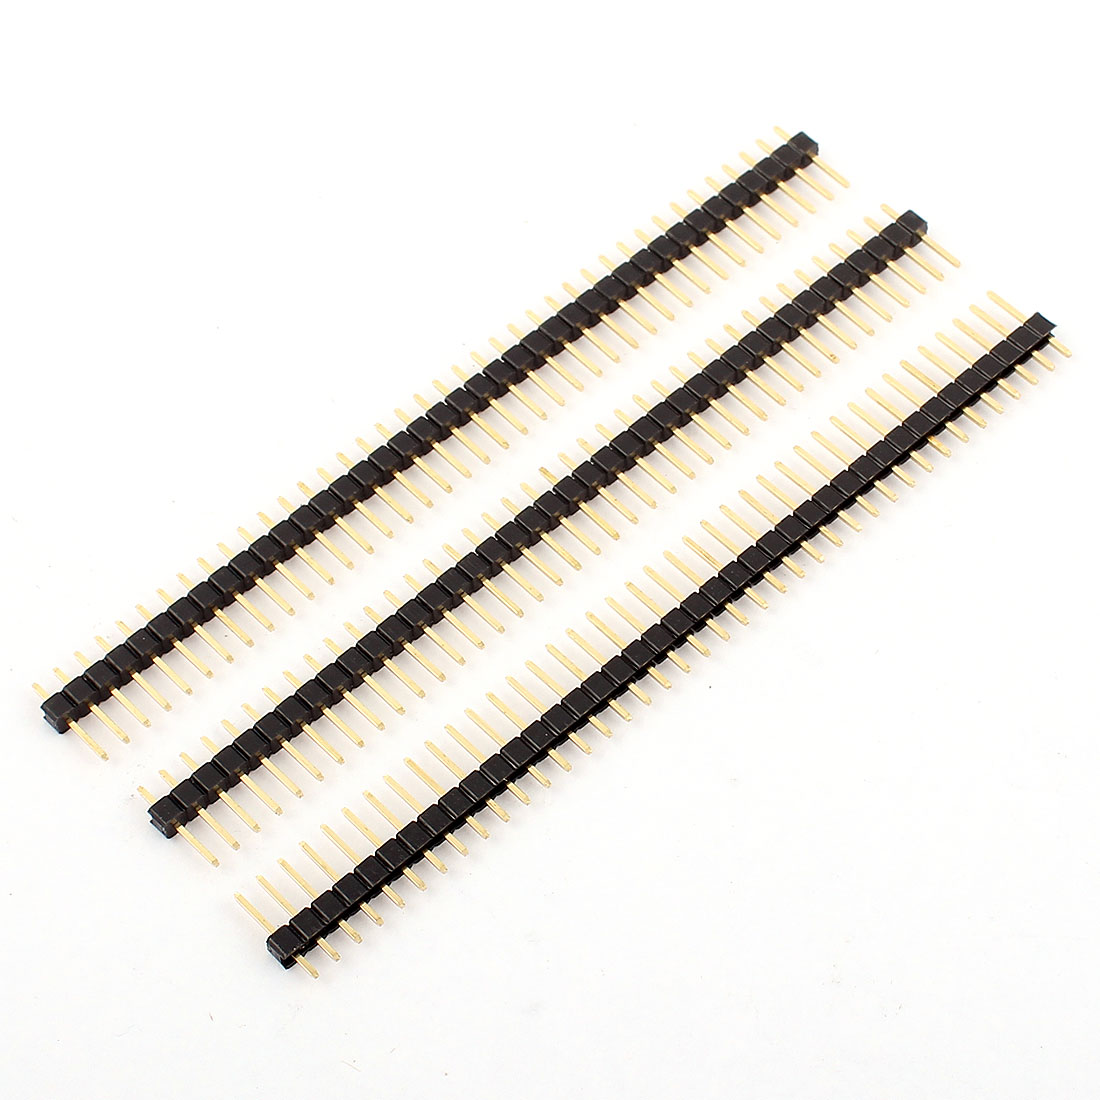 3 Pcs 1x40 Pin 2.54mm Pitch Single Row Pin Header Strip